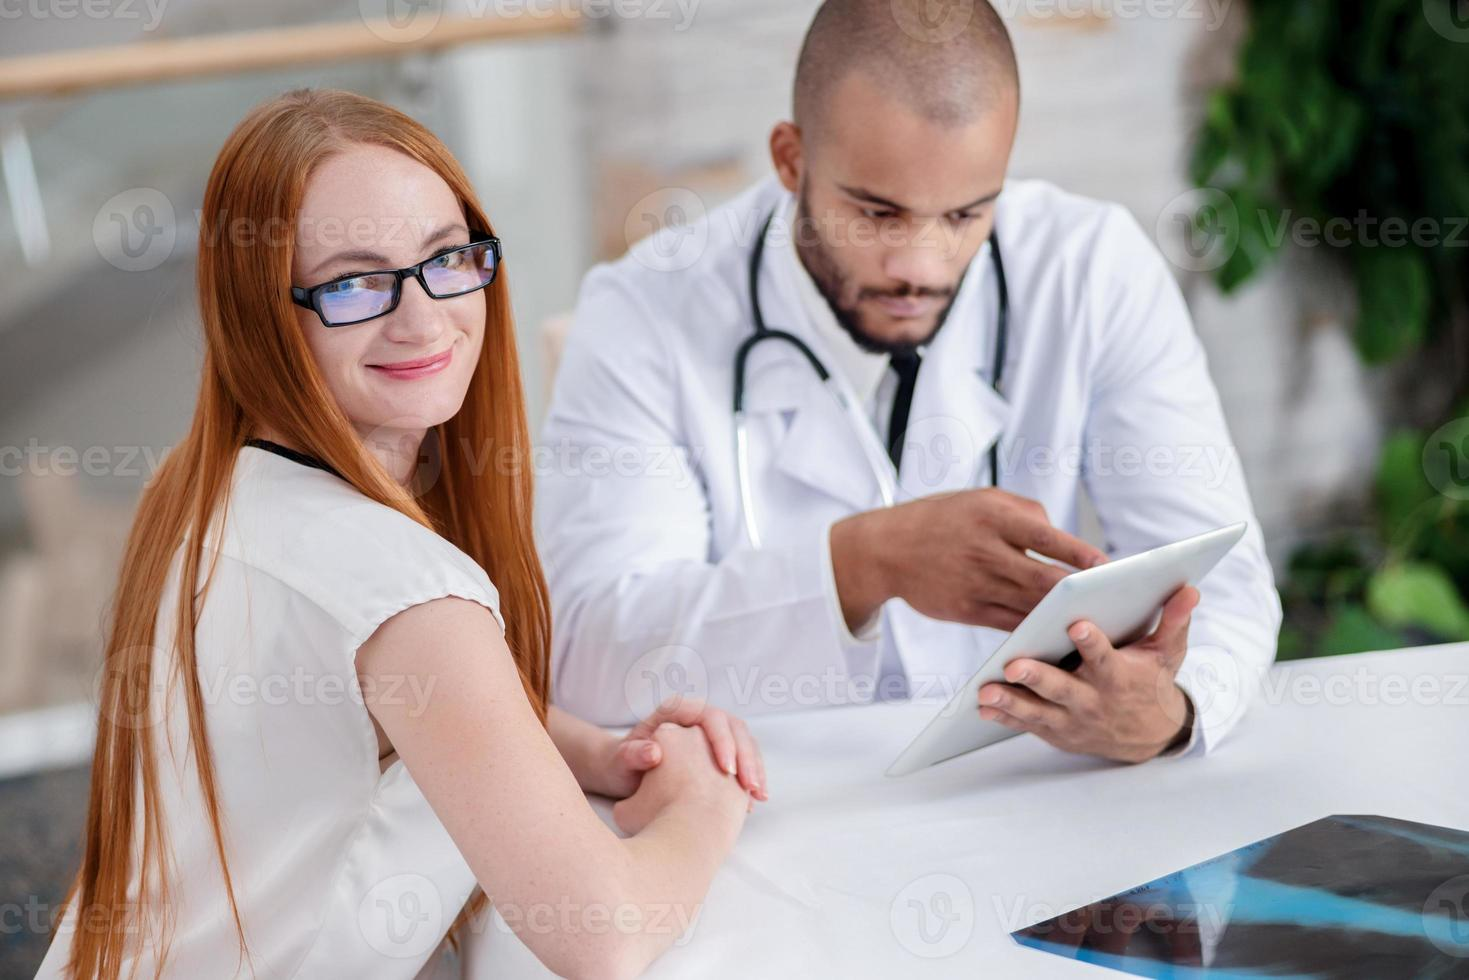 Health of the patient. Doctor talking with the patient photo